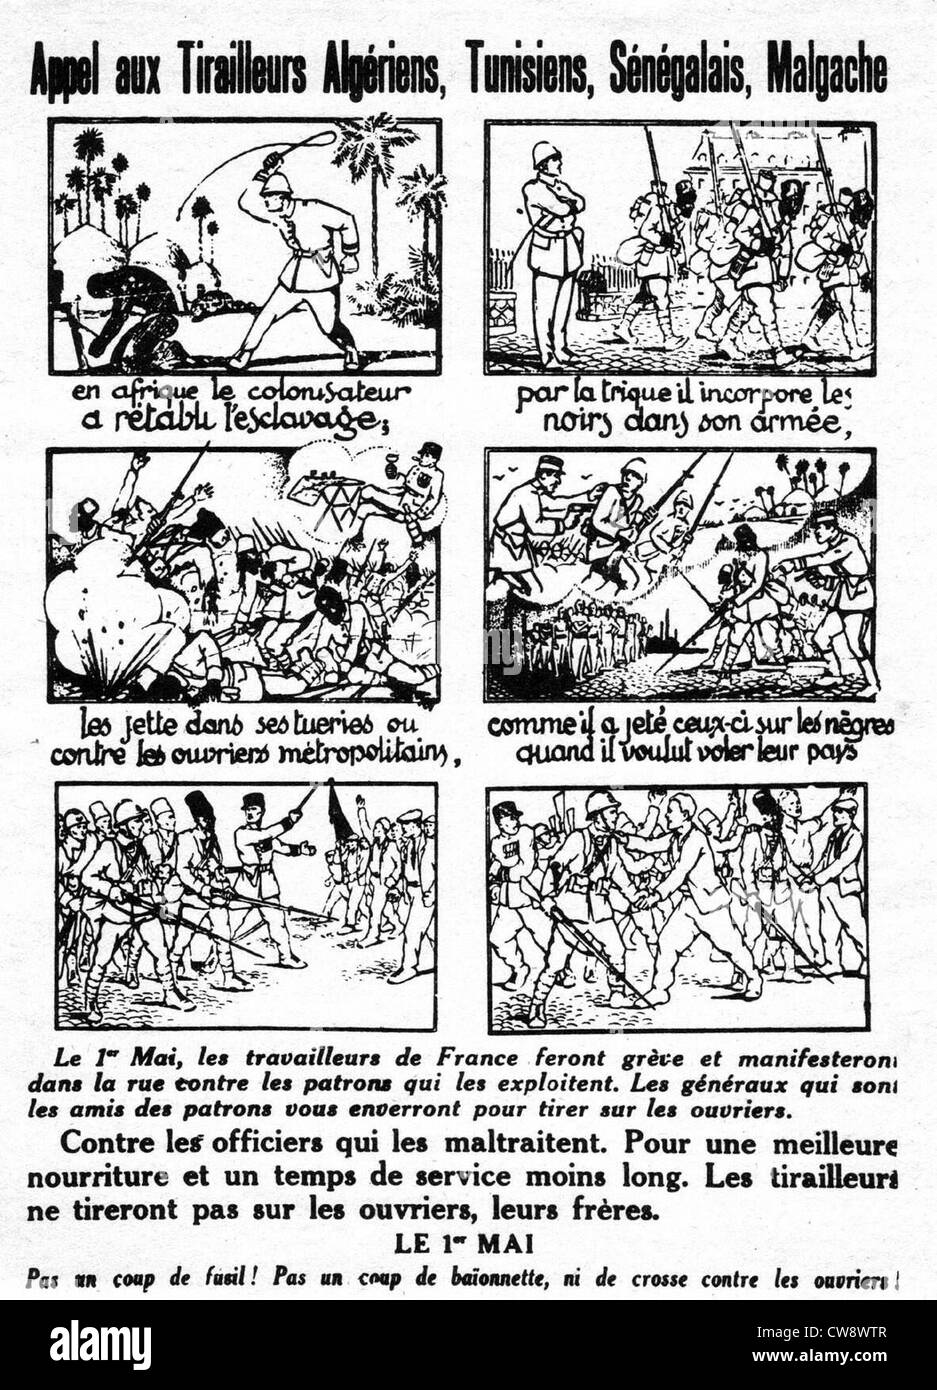 Flyer - 'An appeal to Algerian Tunisian Senegalese Malgache fighters' - Stock Image